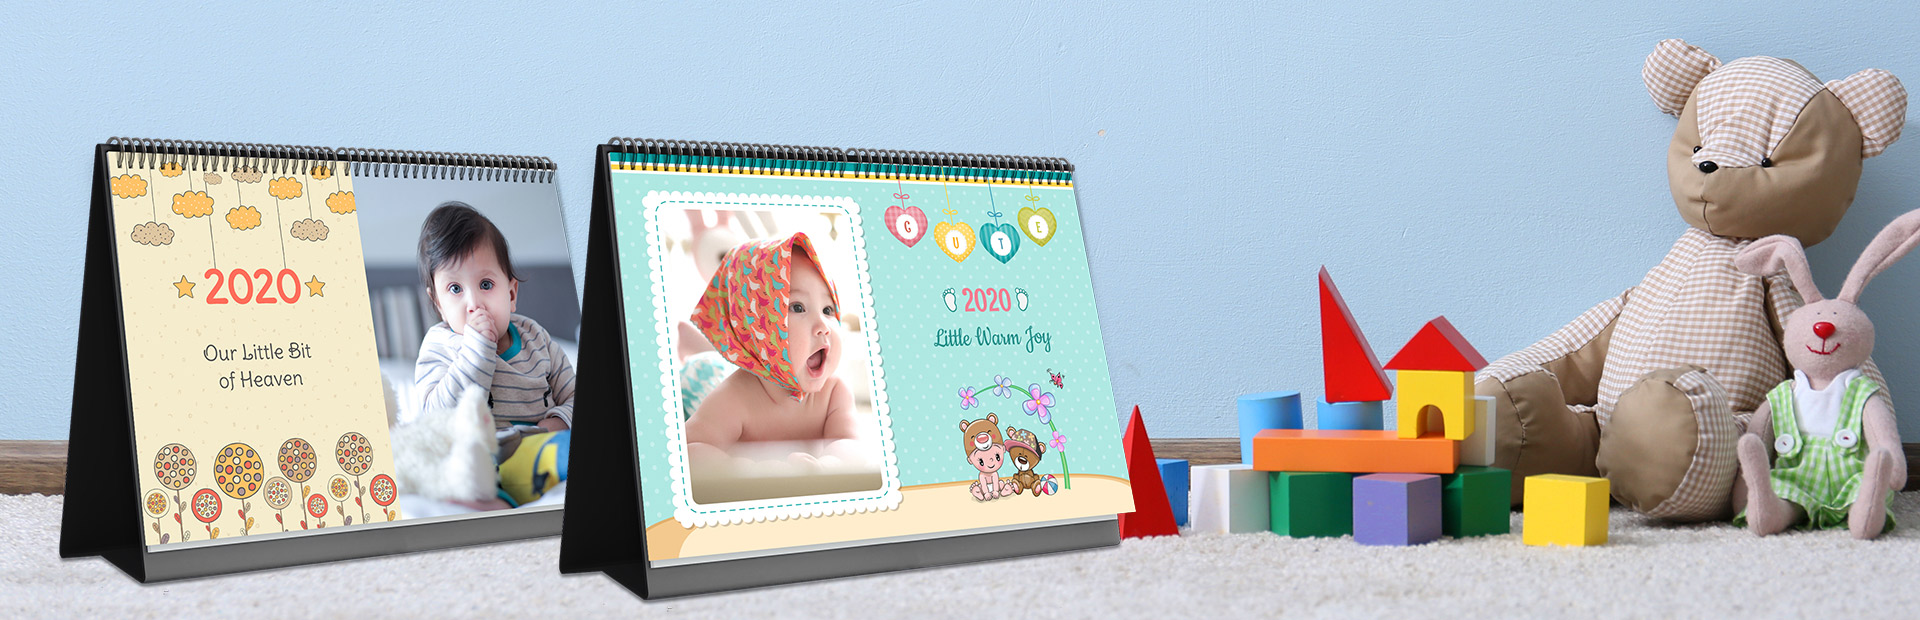 Kids Desk Calendars Online